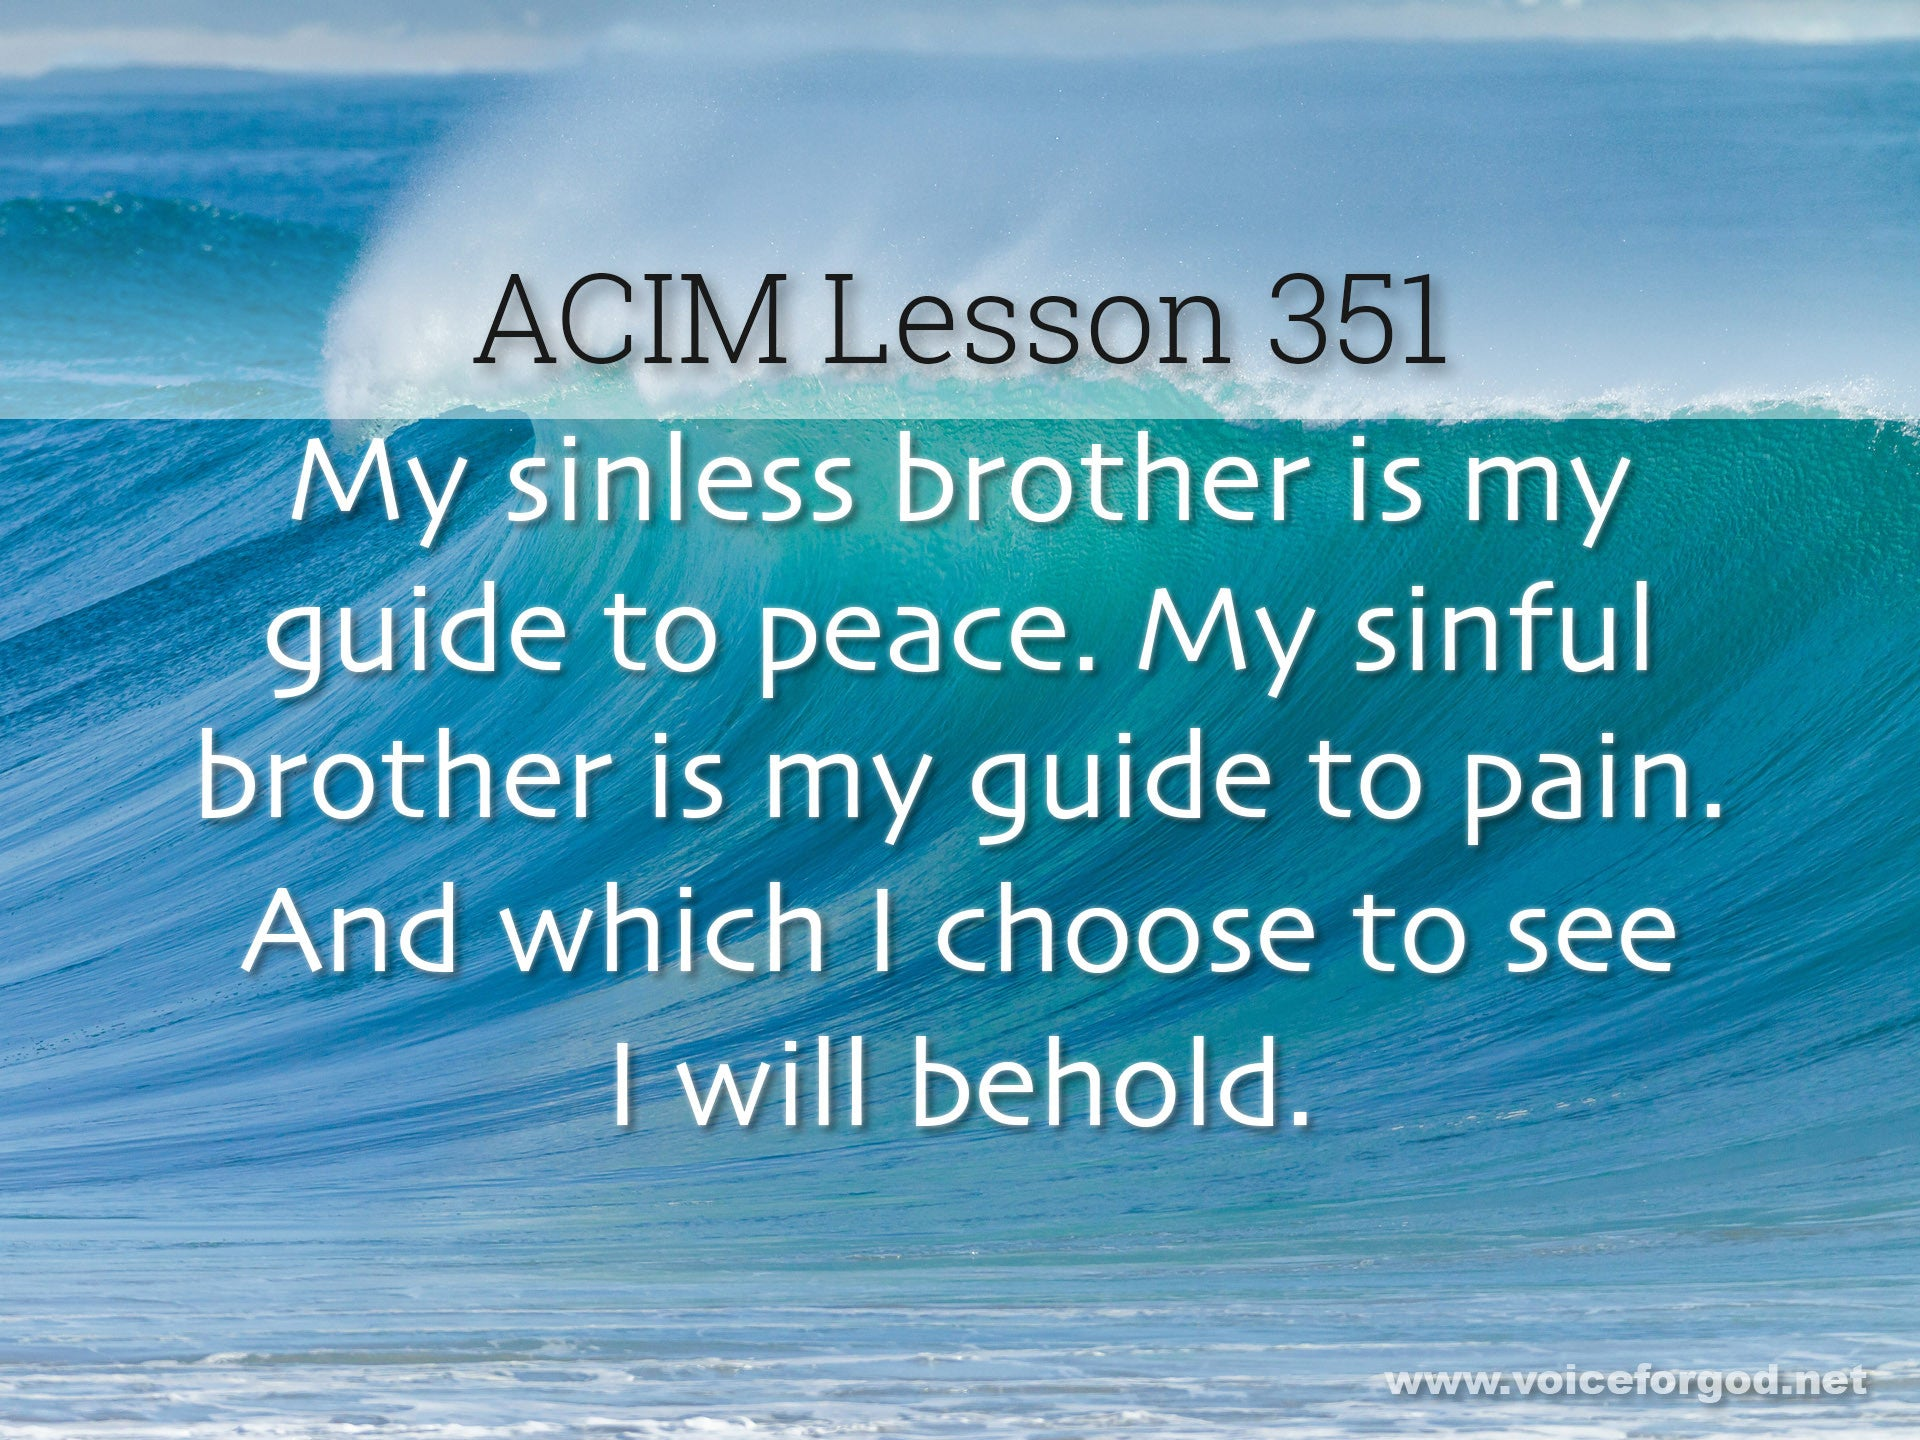 ACIM Lesson 351 - A Course in Miracles Workbook Lesson 351